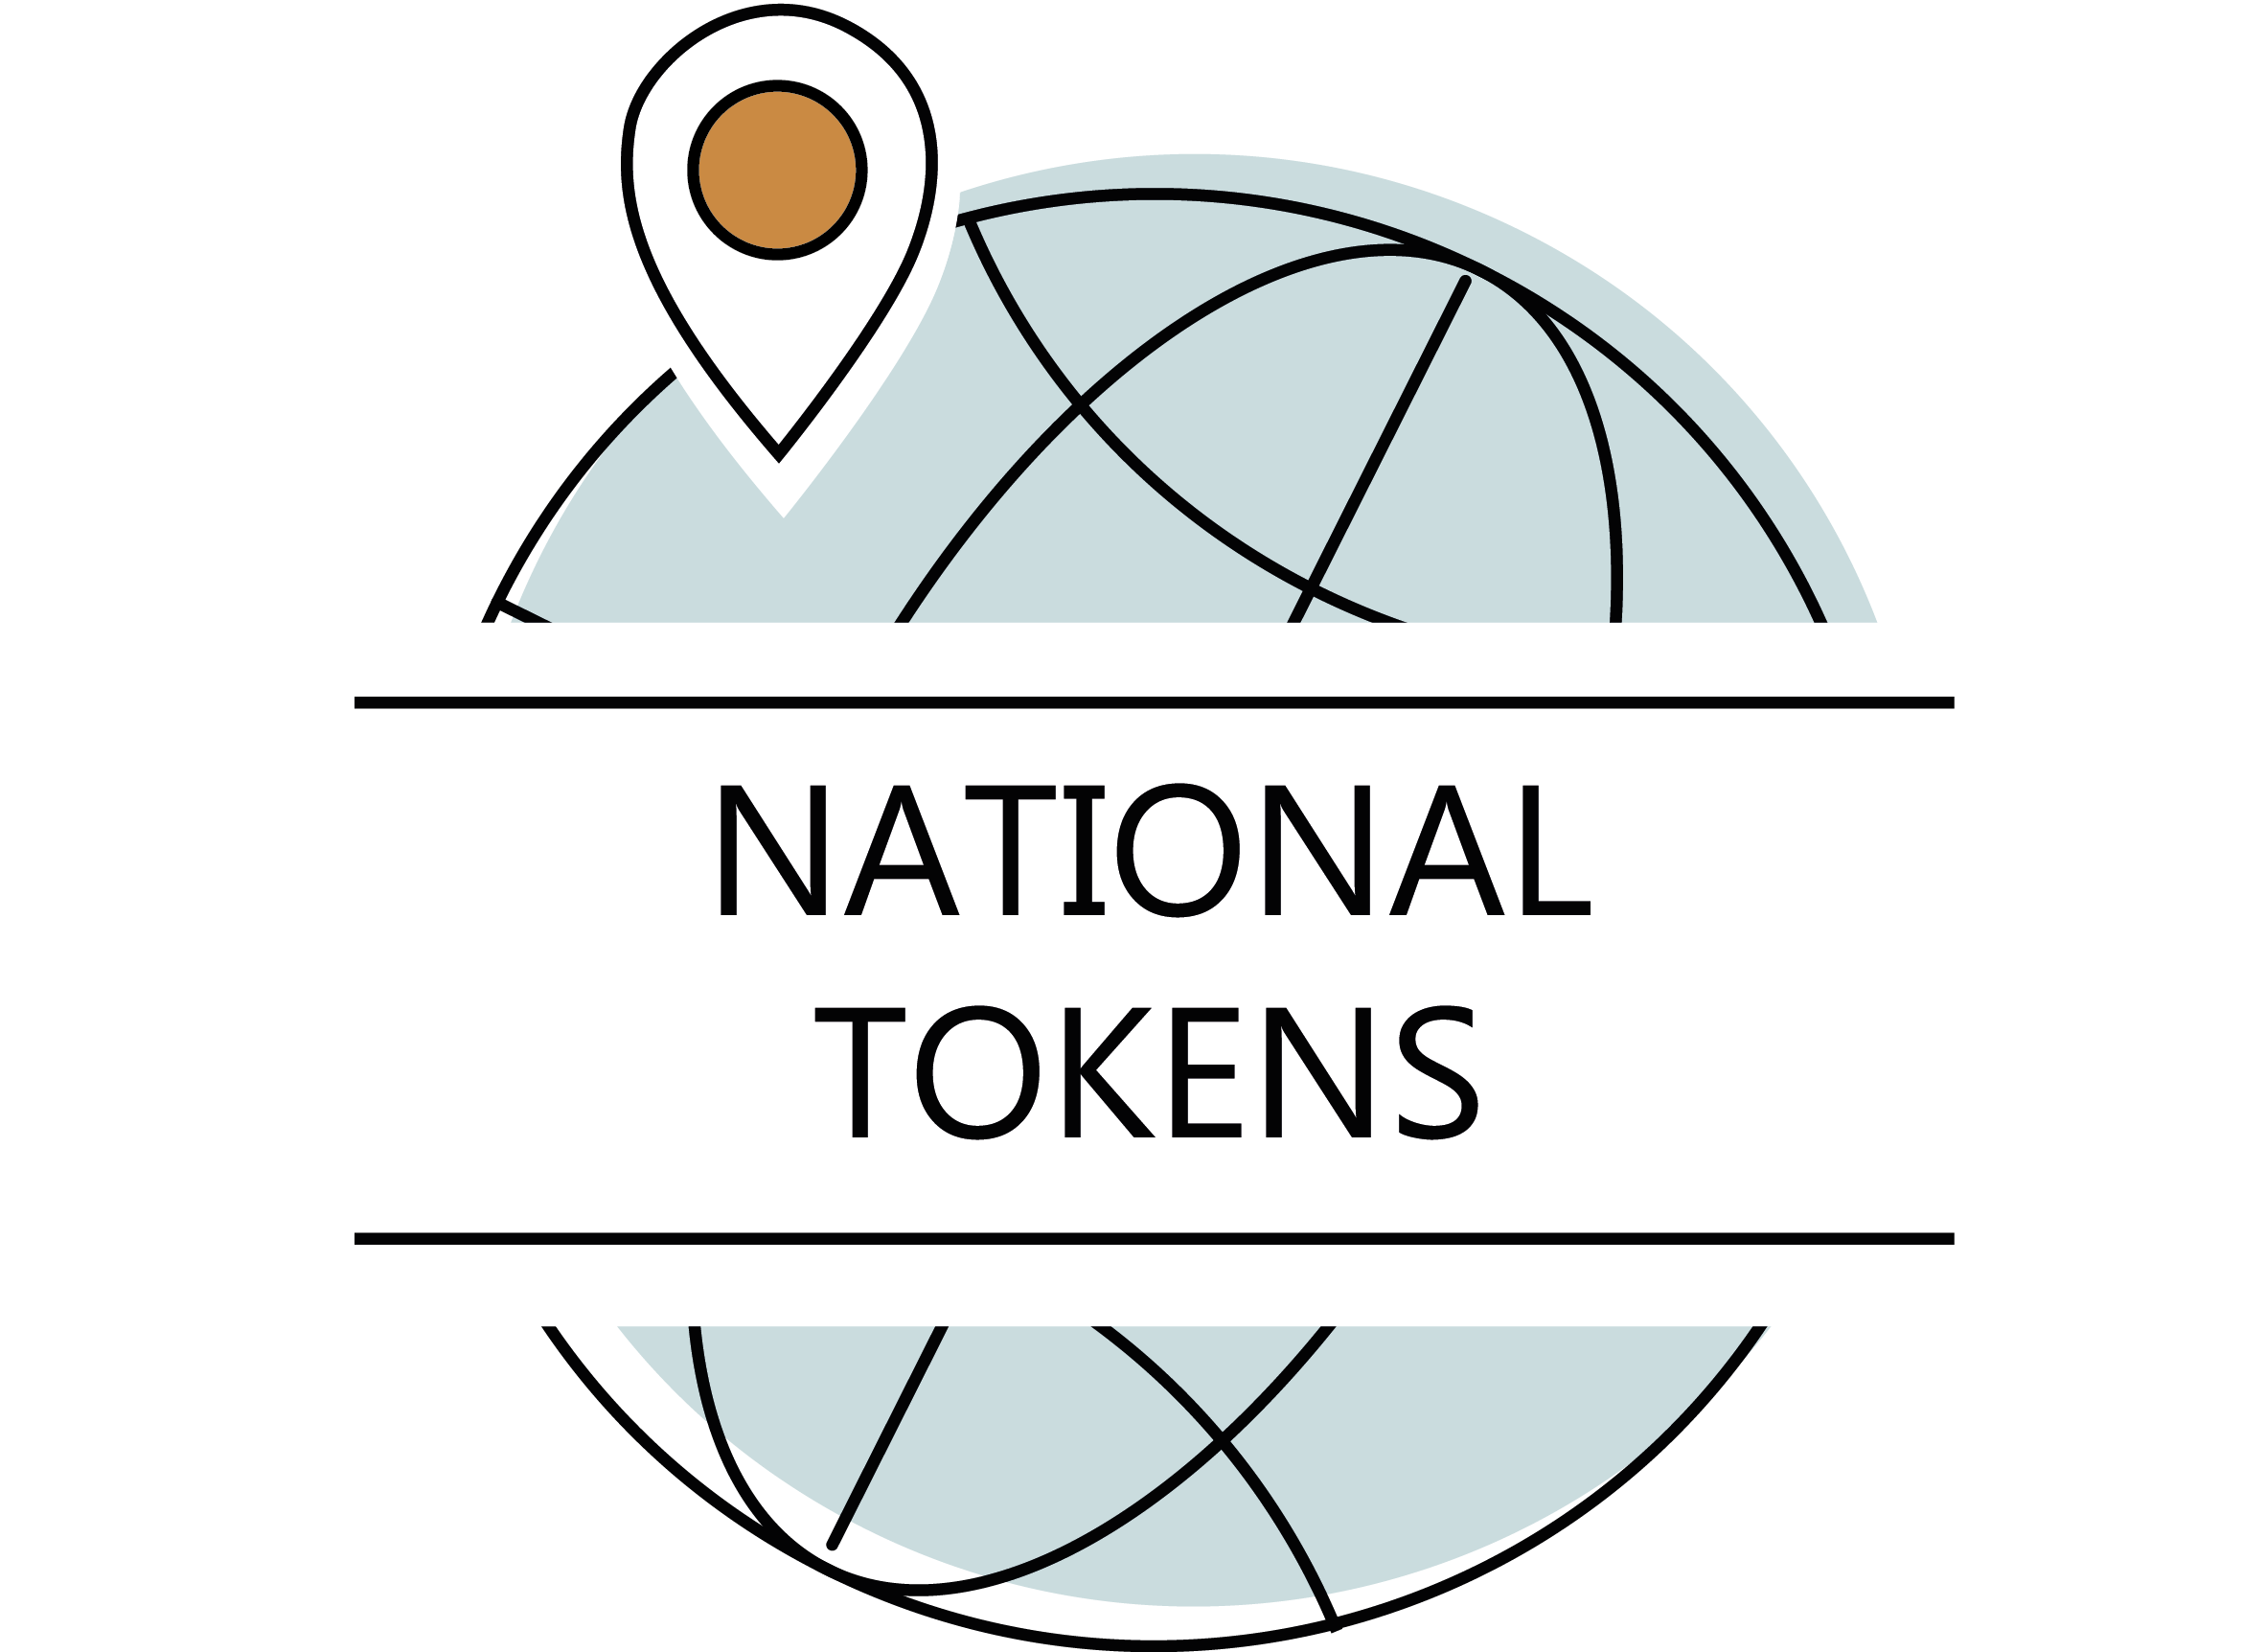 National Tokens Shop